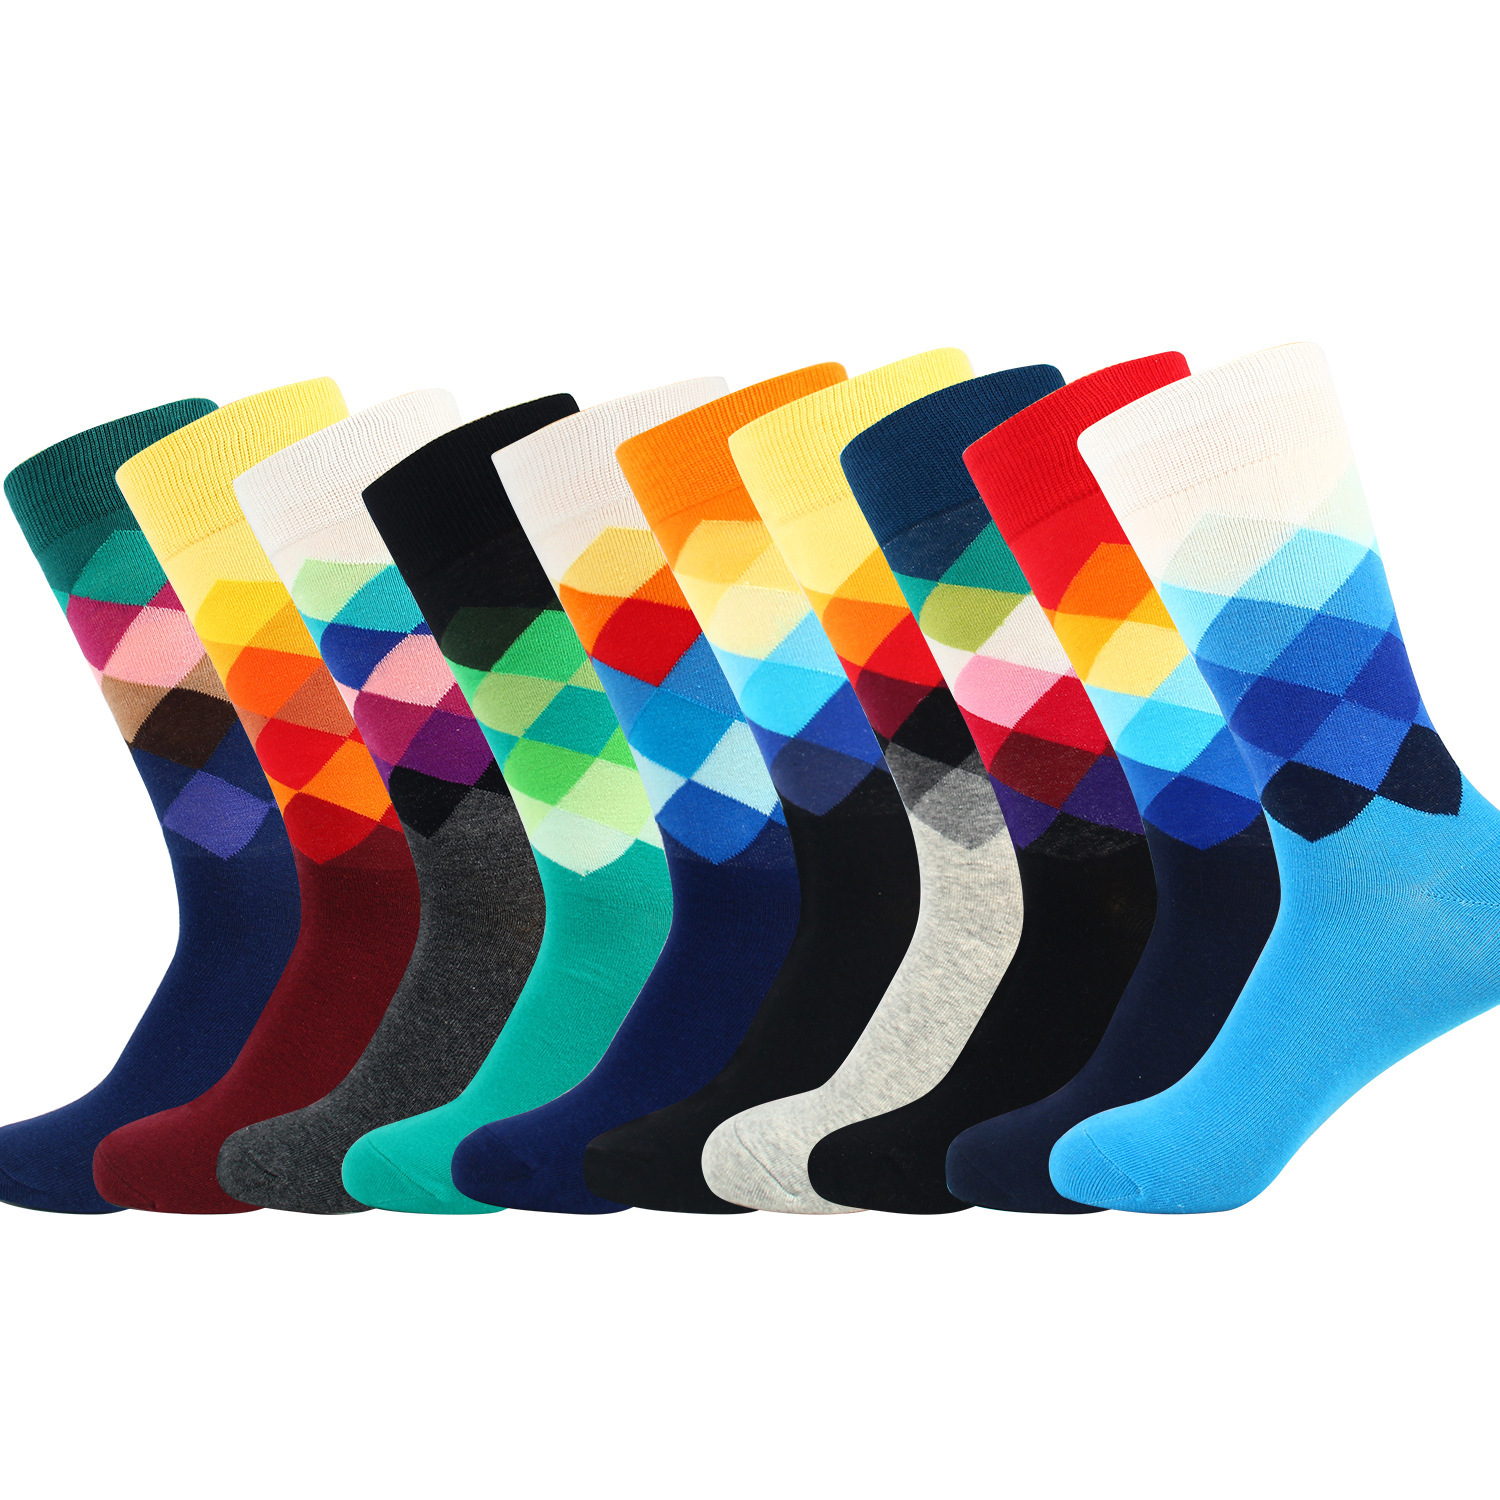 Happy Men's Tube Classic Crazy Socks Colorful Pattern Funny Style Cotton Stockings High Quality Male Crew Dress Socks Business